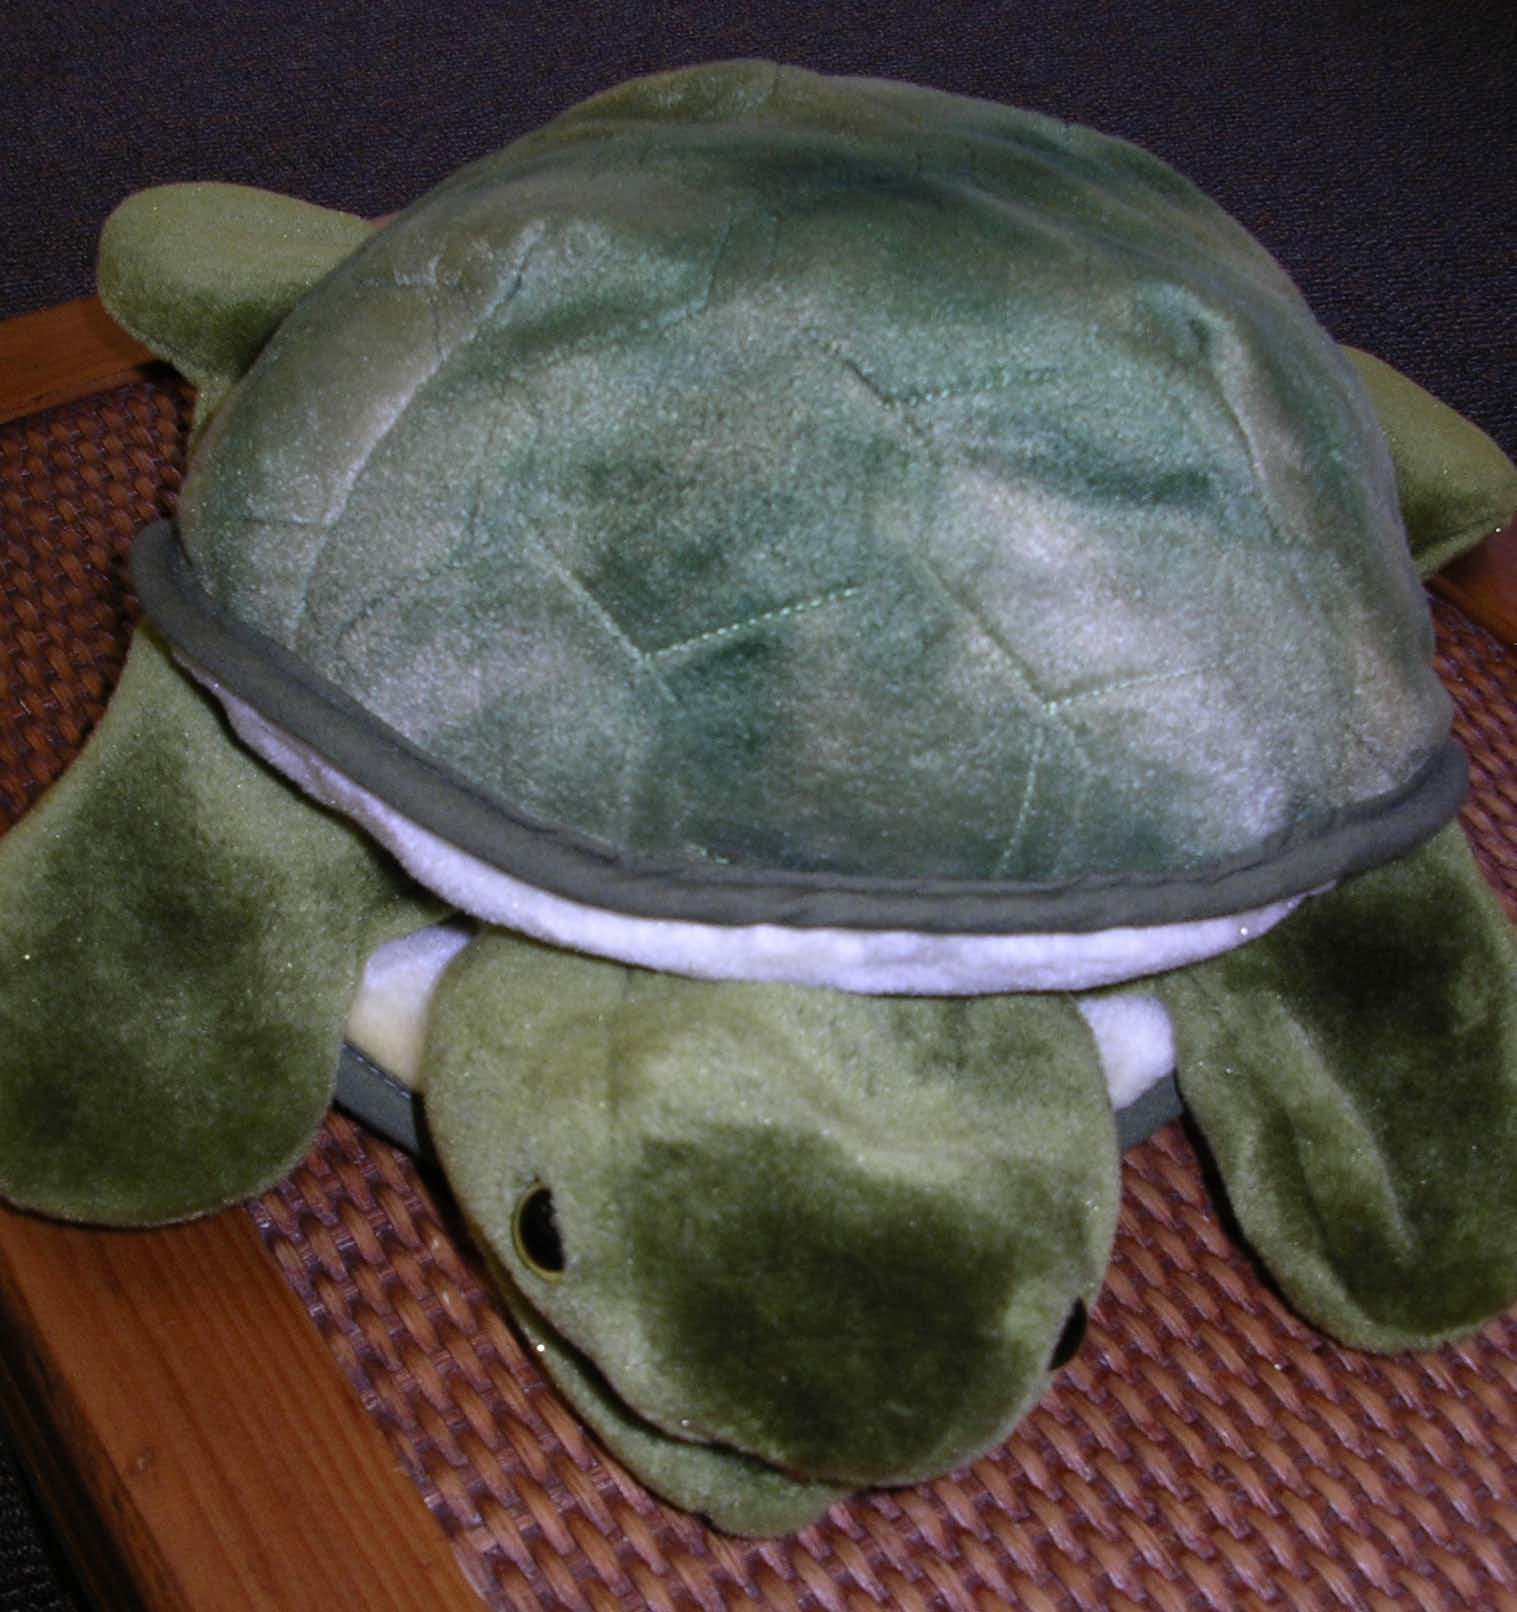 tattle the tattle tale turle, classroom management